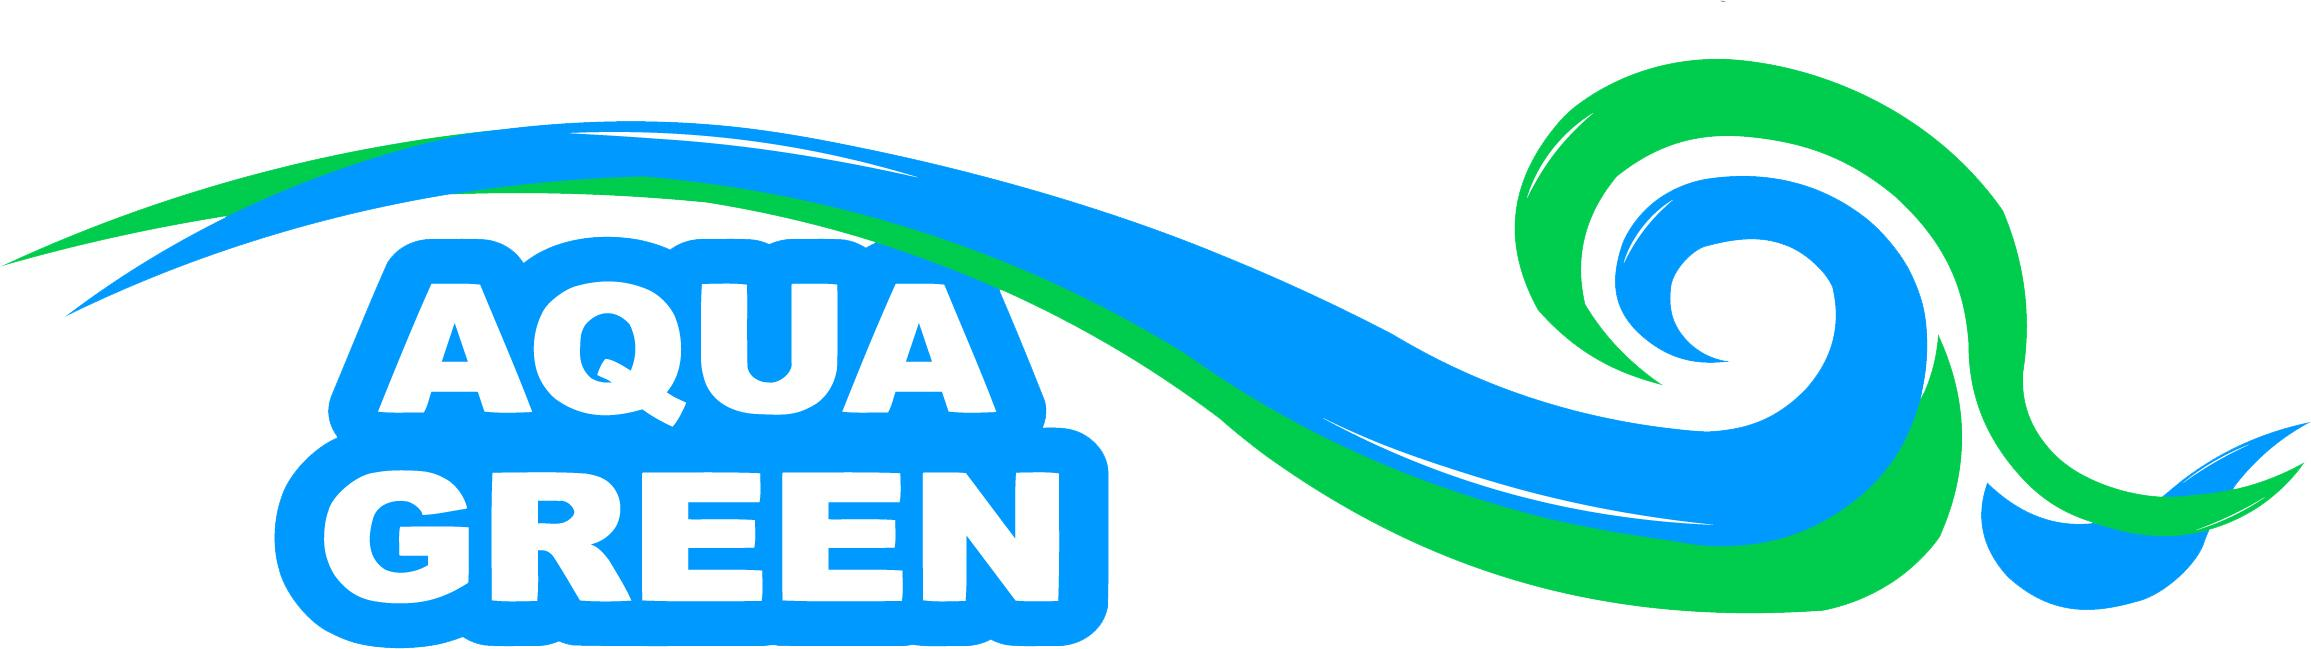 aquagreen logo_1_29_1_1_1